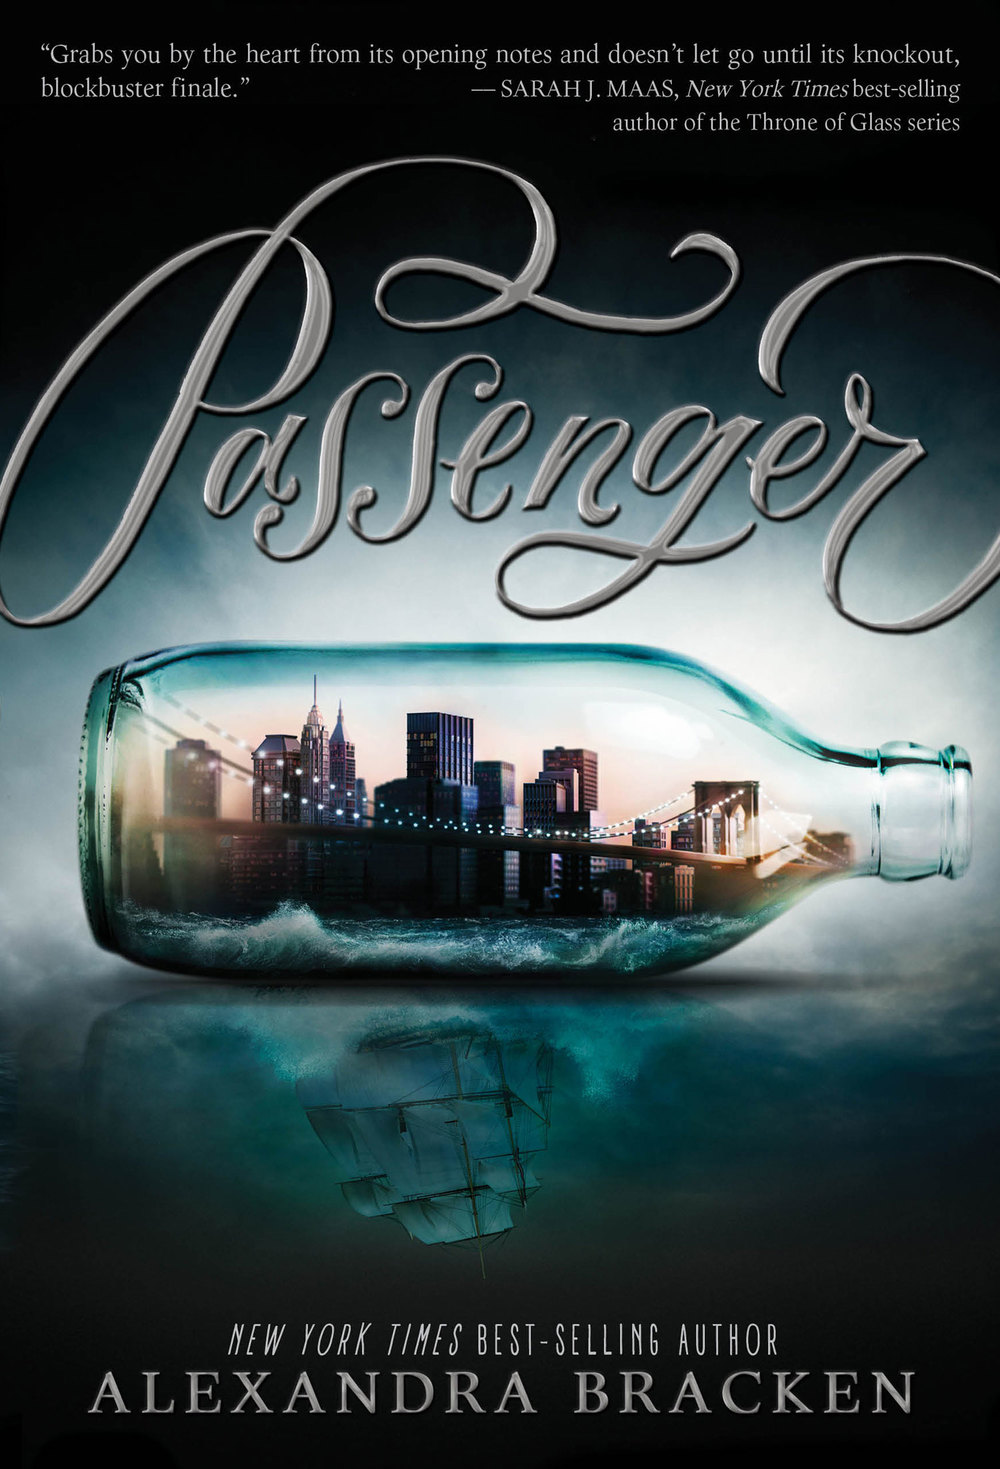 Passenger by Alexandra Bracken - Giveaway on Clear Eyes, Full Shelves